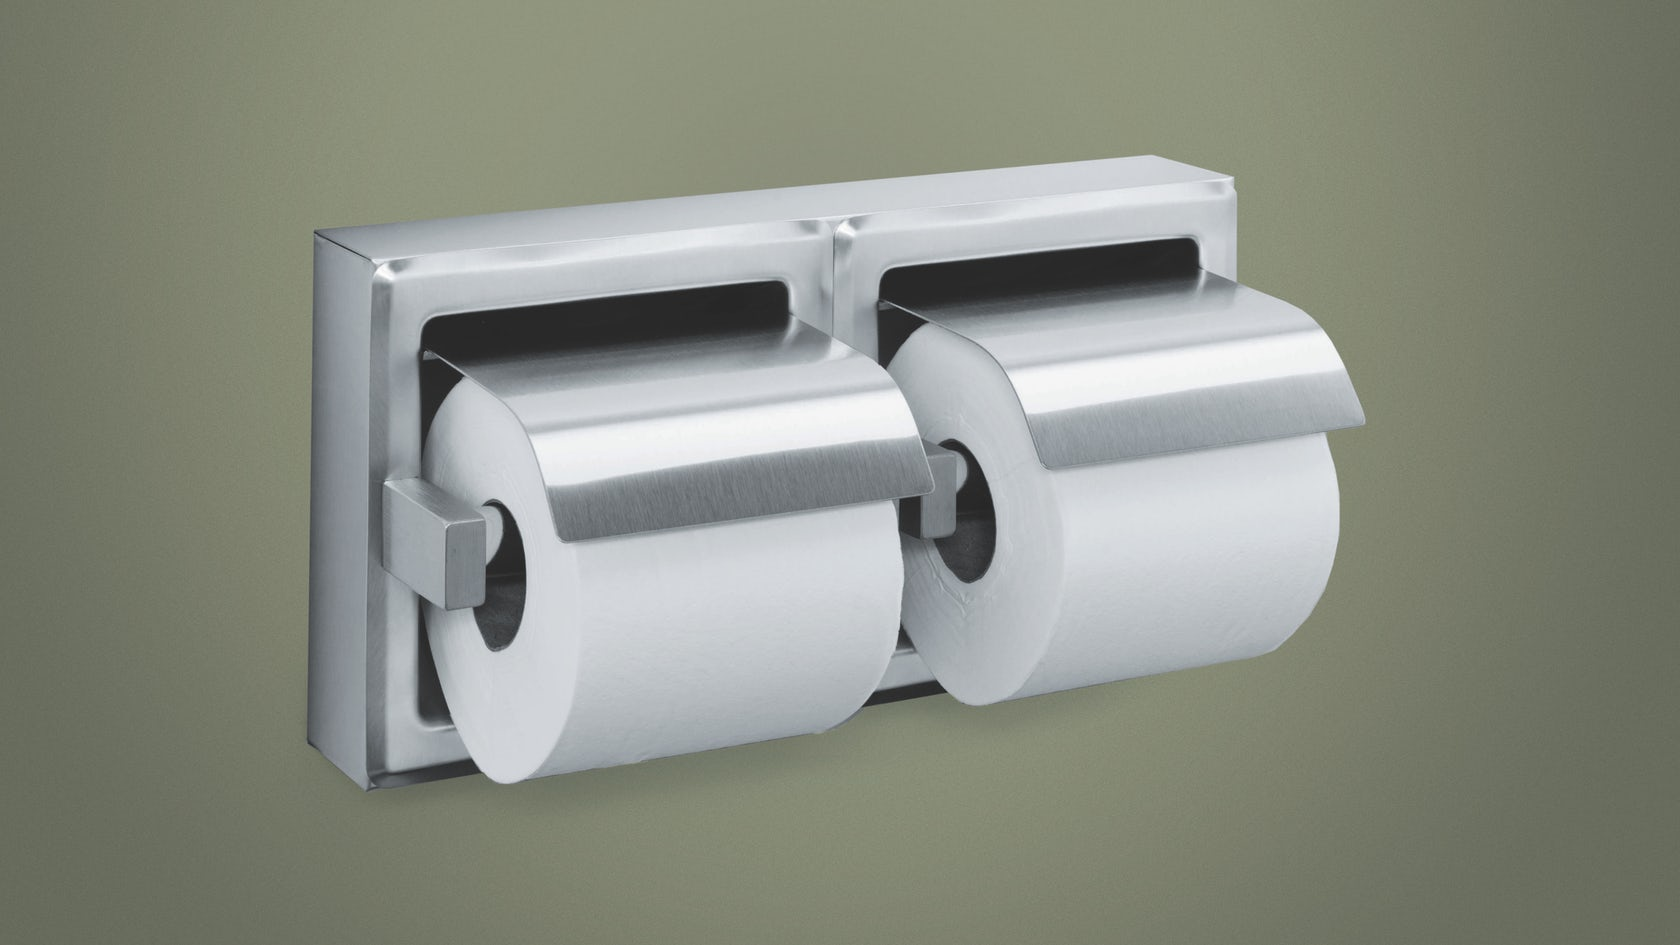 Recessed stainless steel double toilet tissue holder with hood architizer - Recessed toilet paper dispenser ...